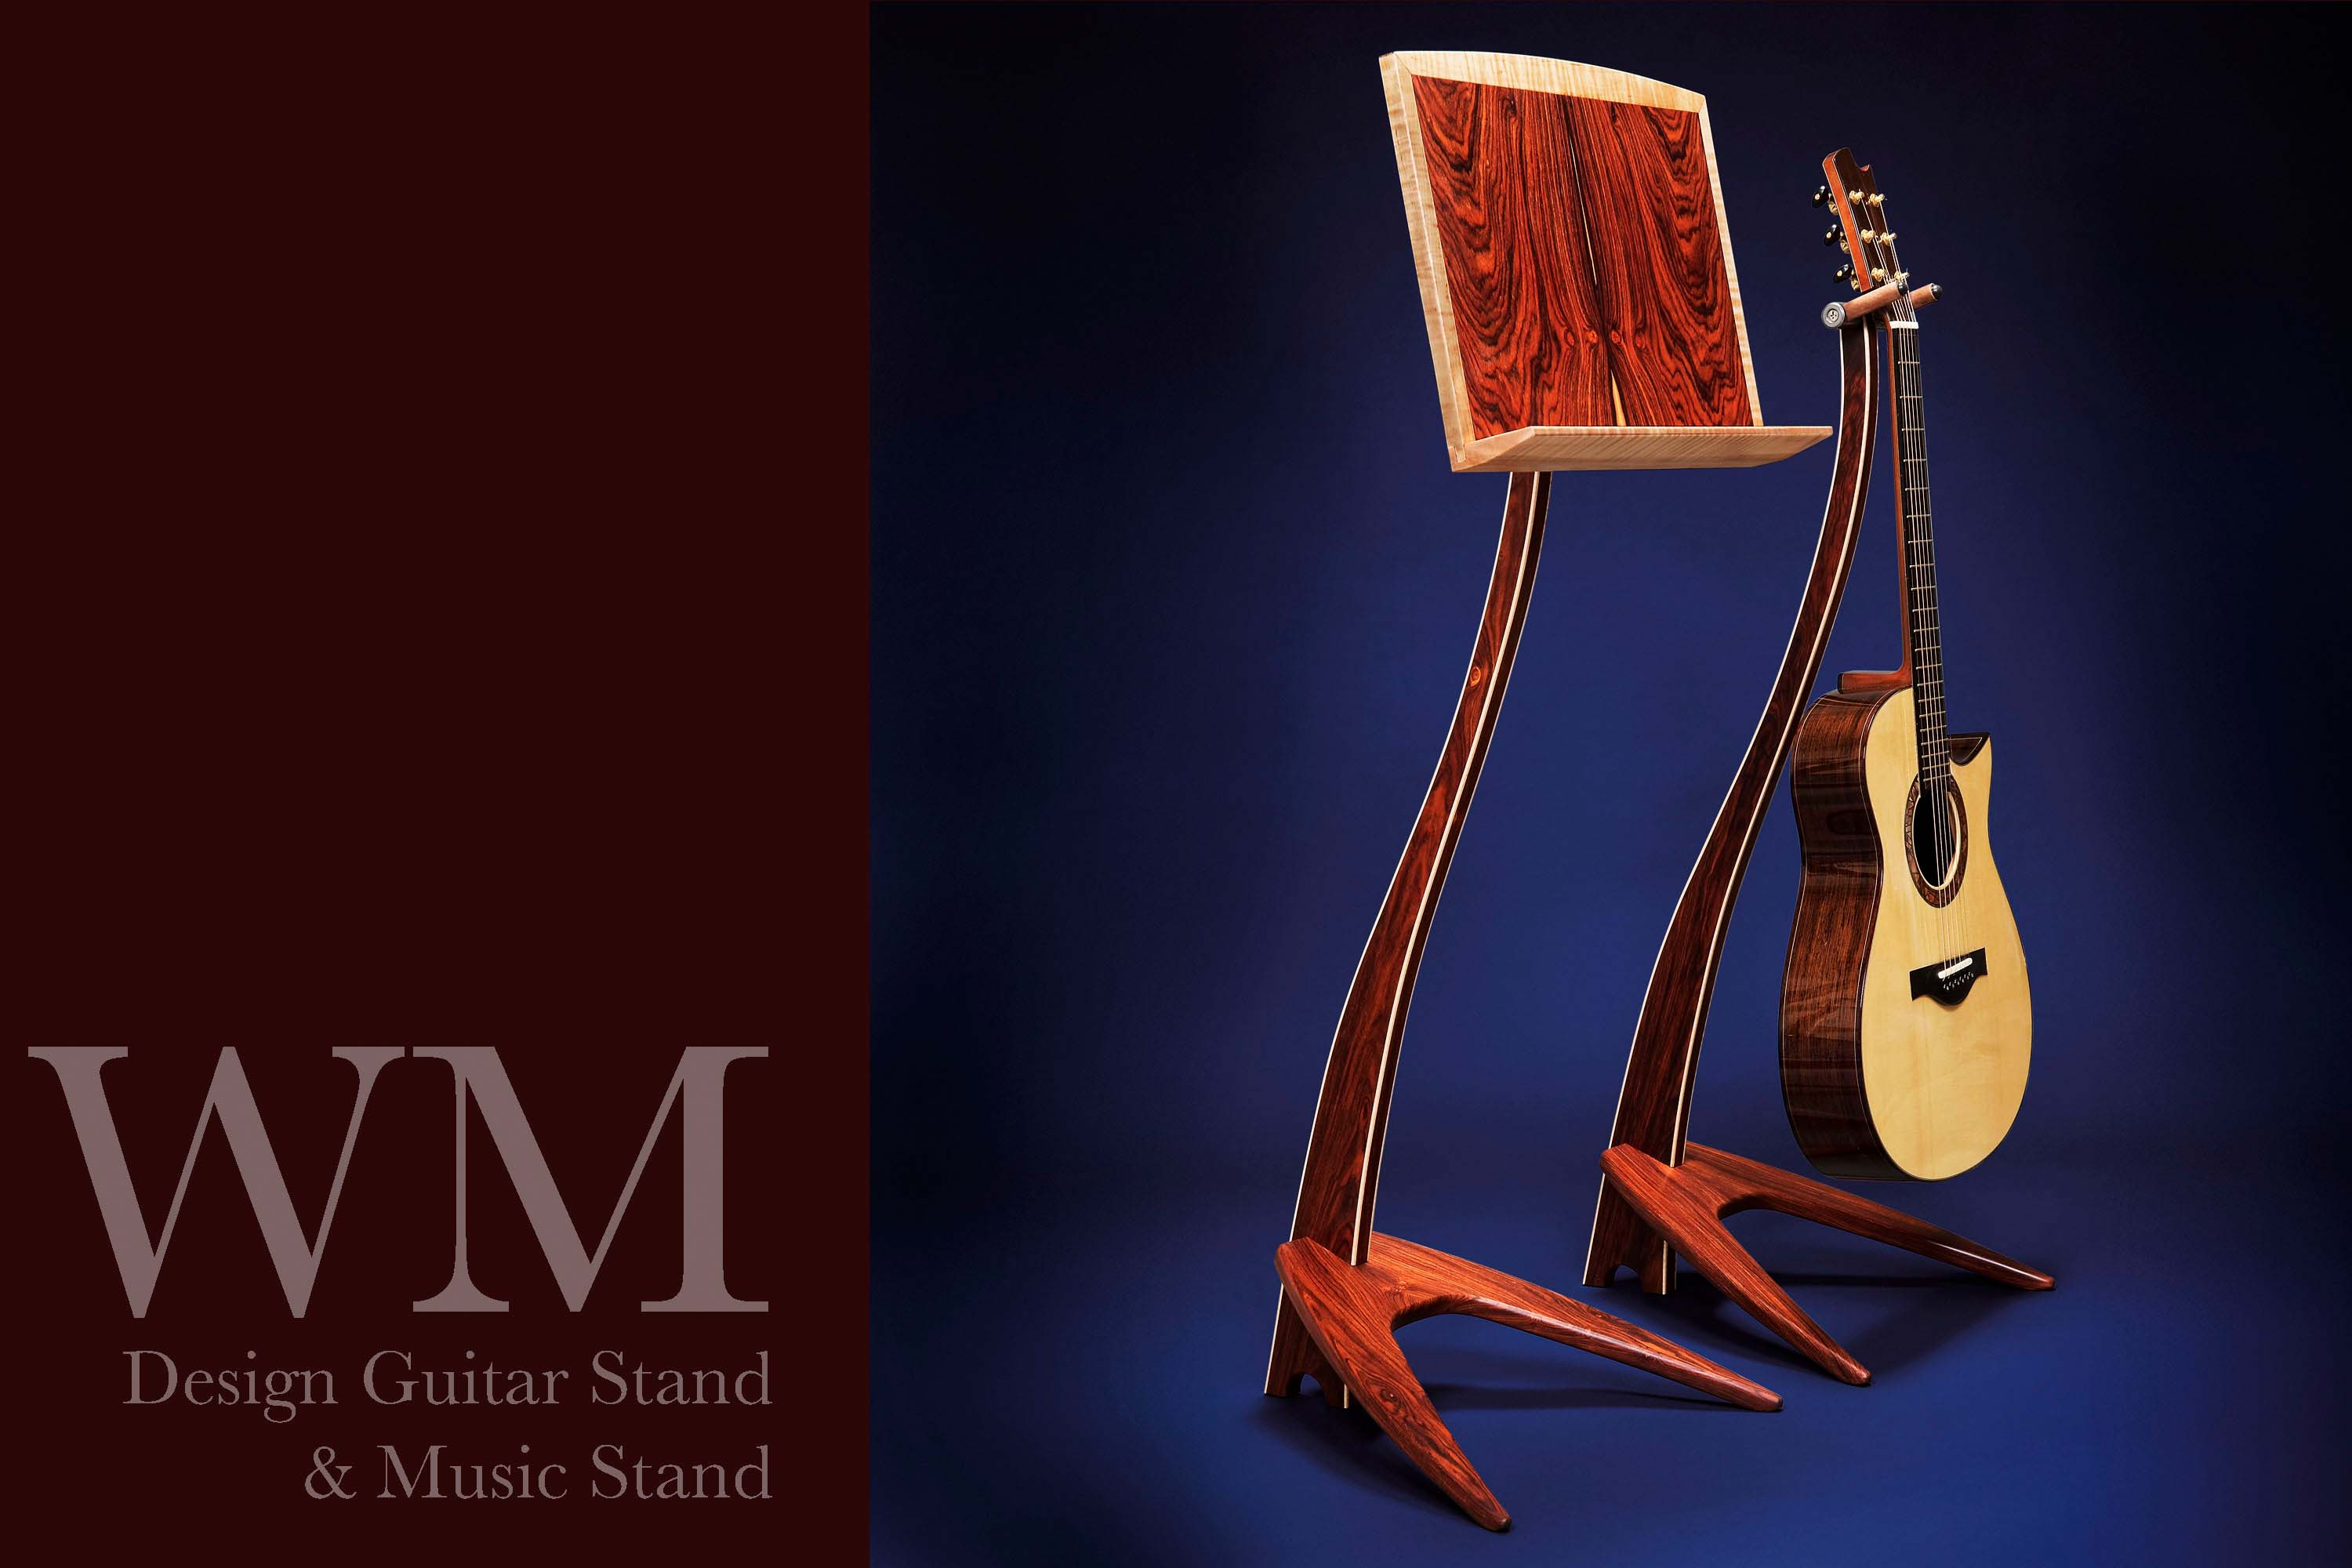 WM Guitar Stand in cocobolo.